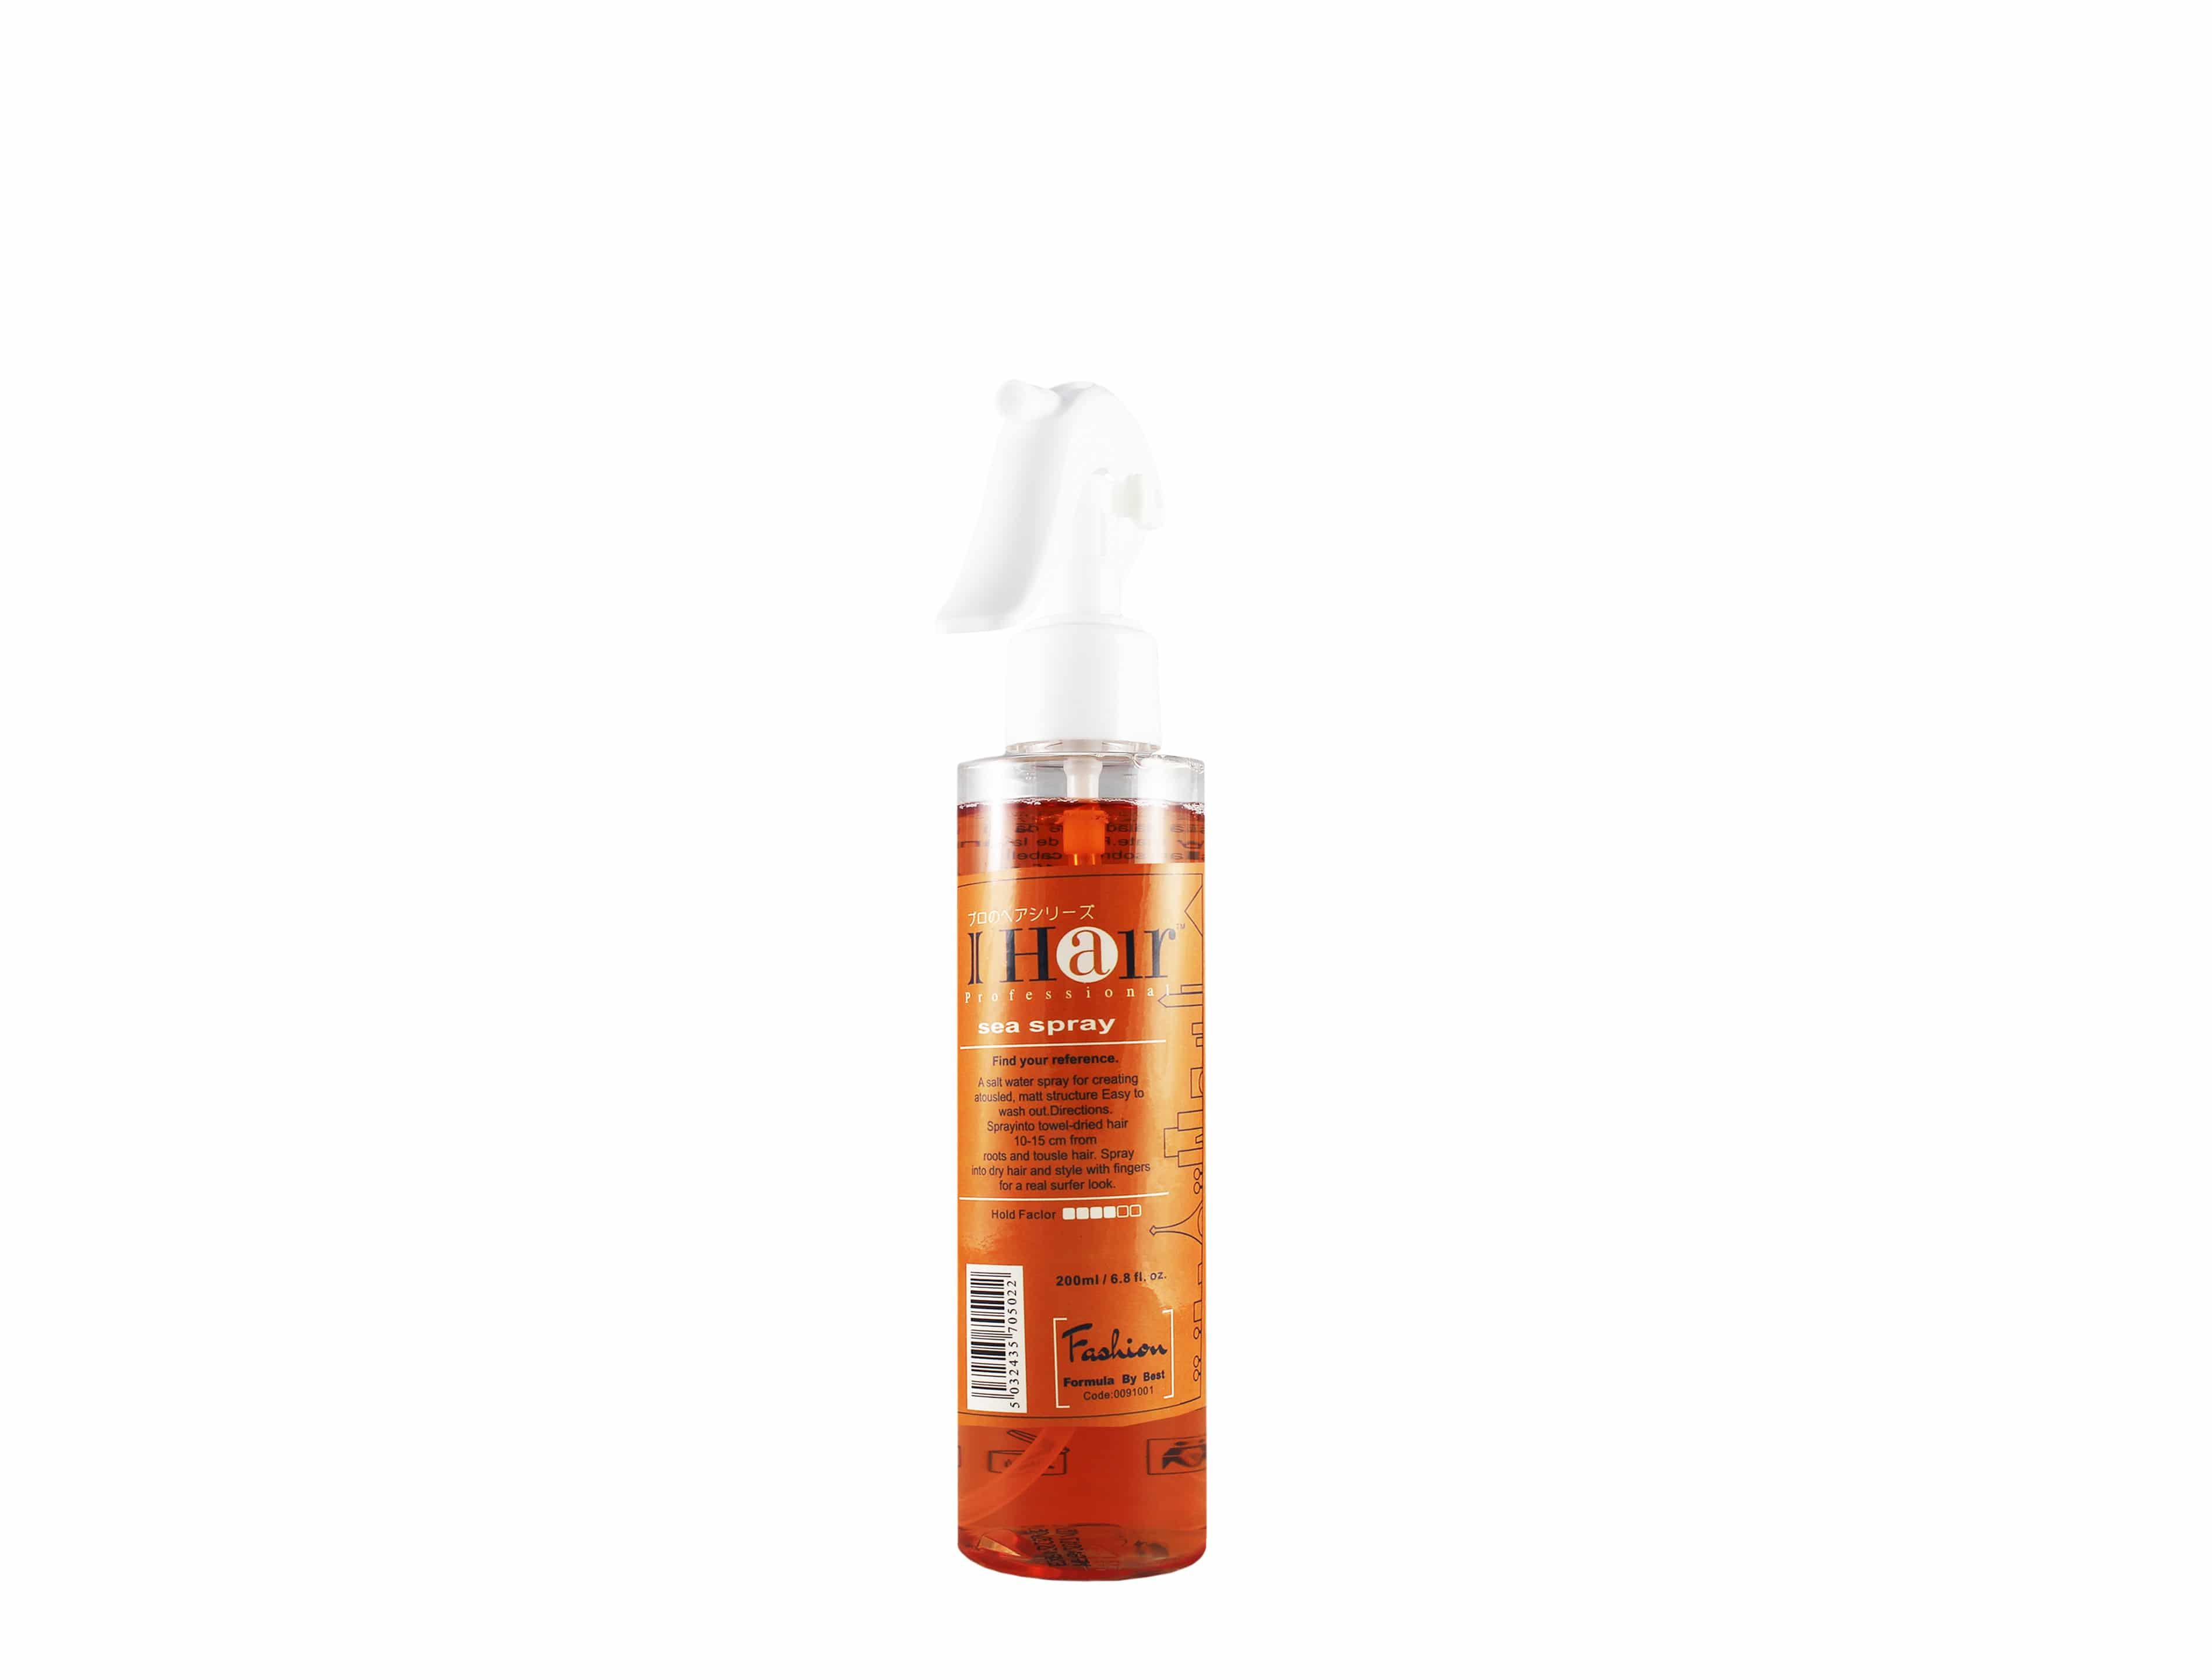 I HAIR SEA SPRAY 200ML (FORMERLY OS FASHION)